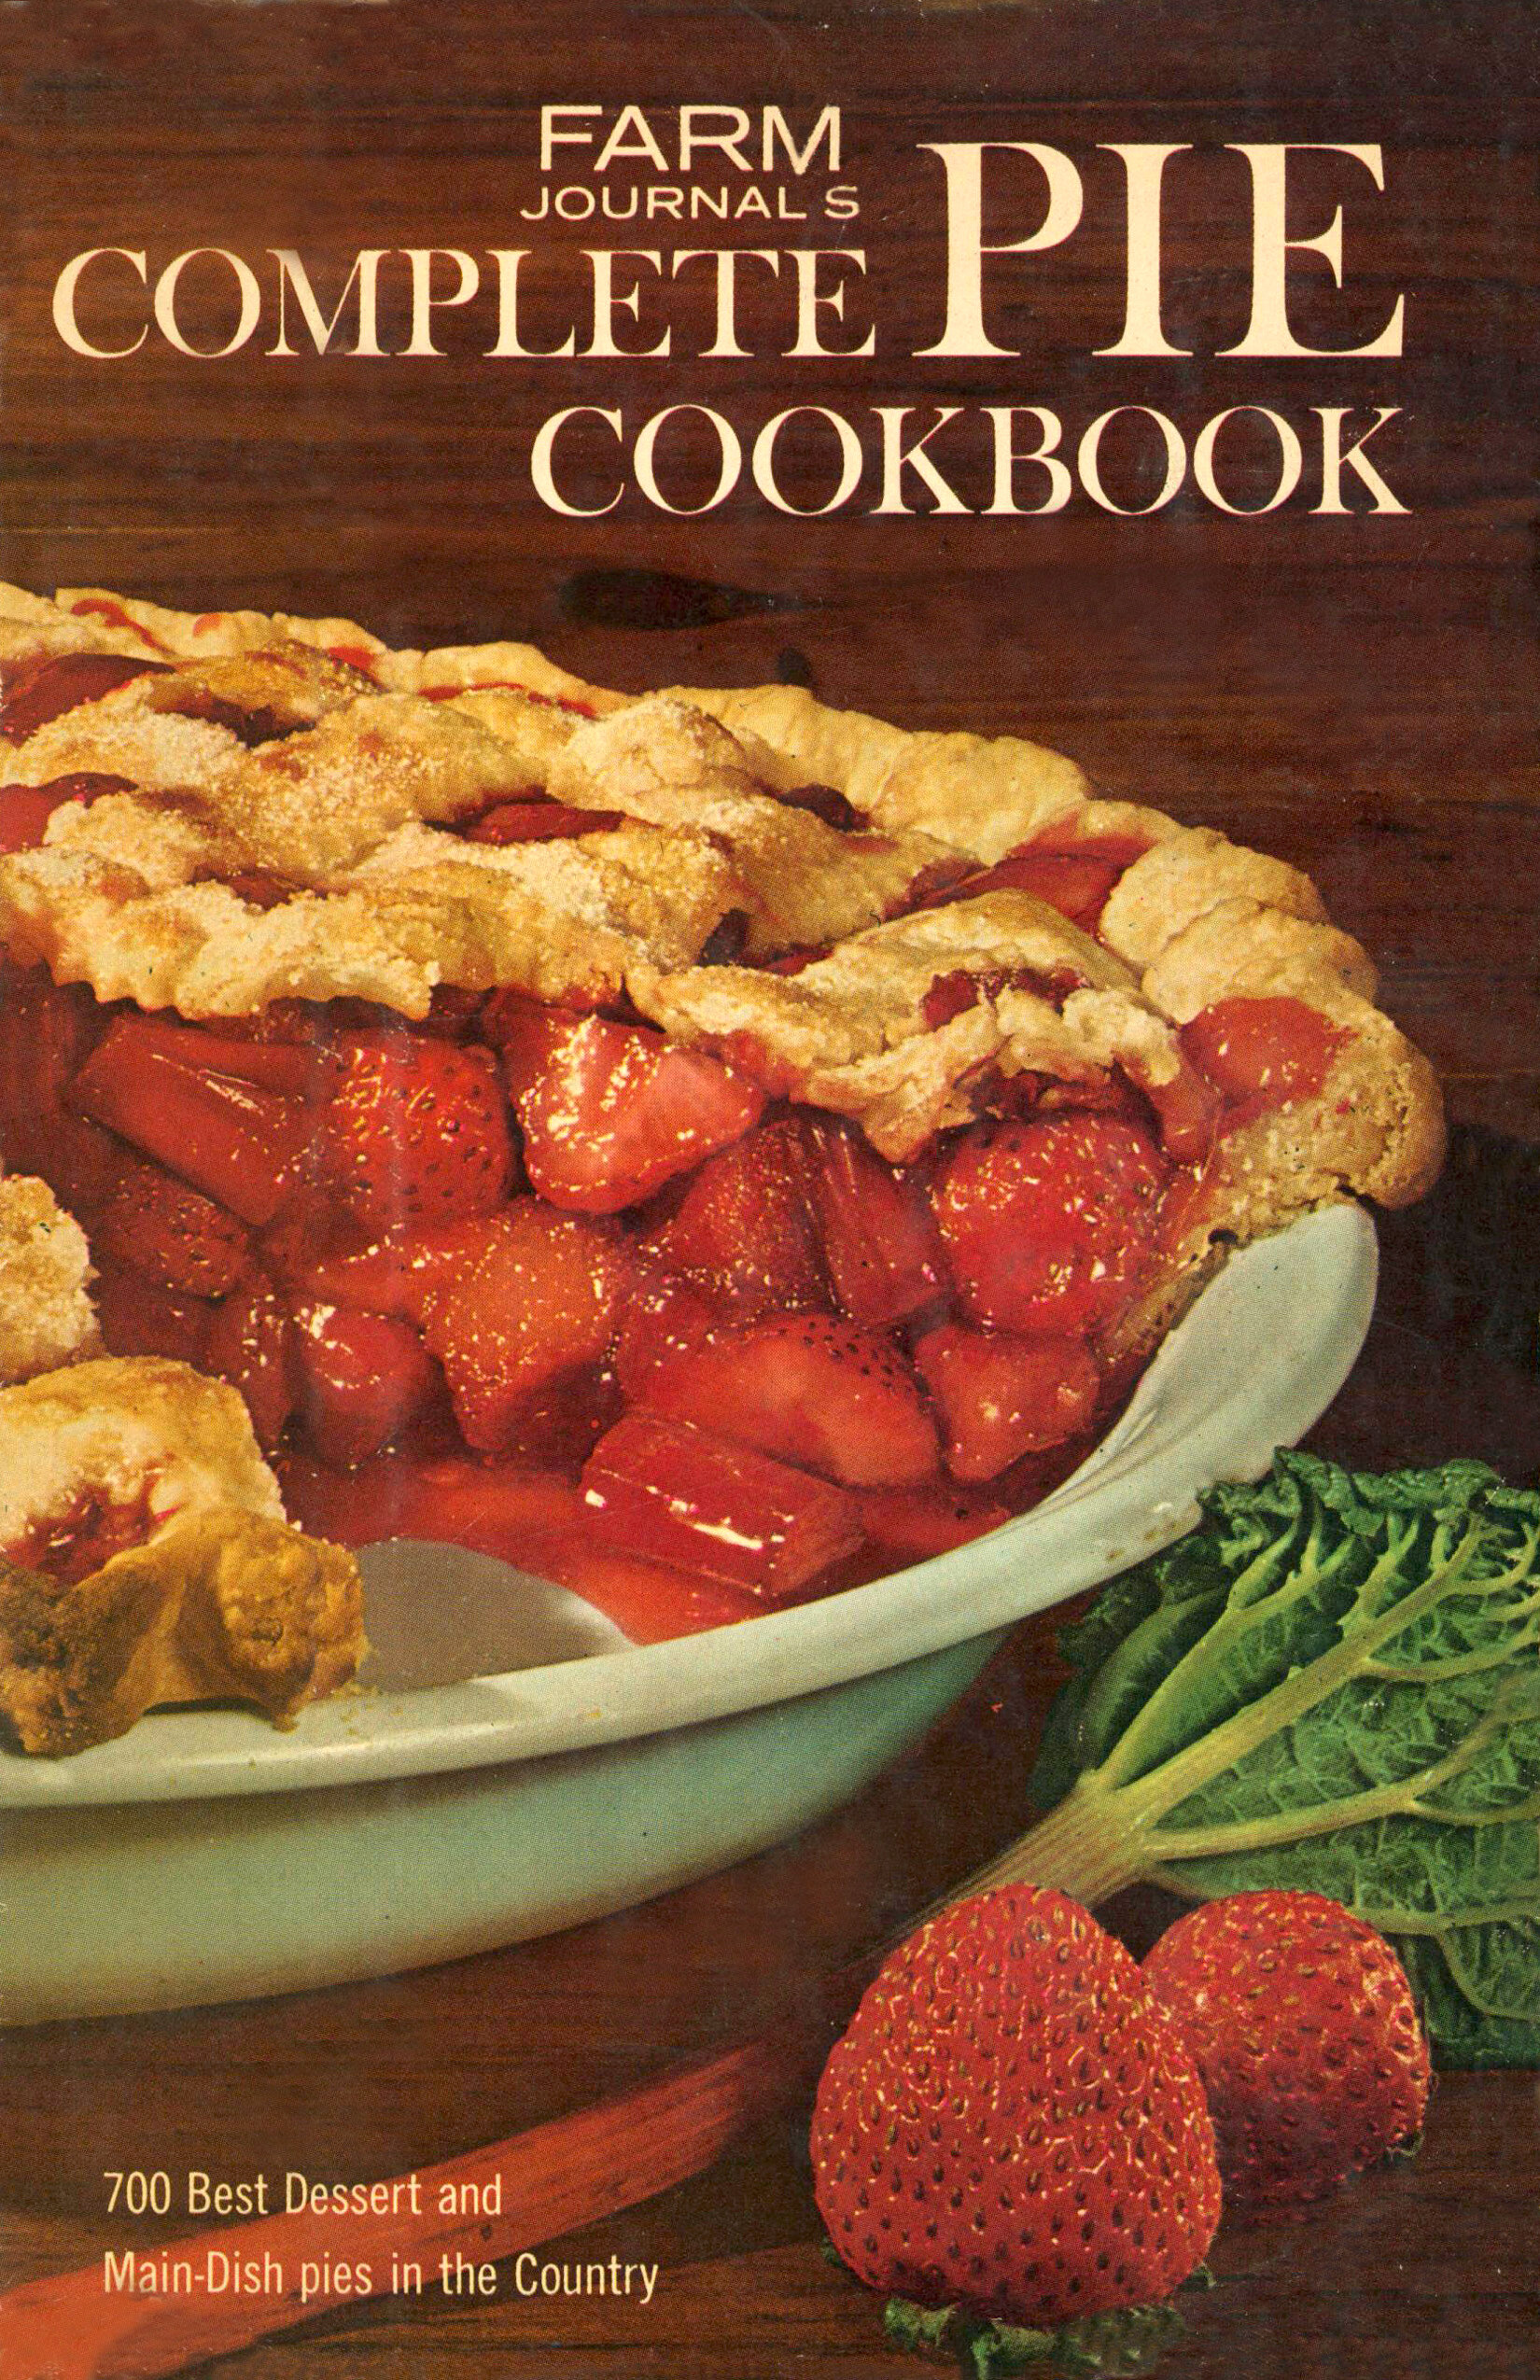 Behind The Cookbook: Farm Journal's Complete Pie Cookbook